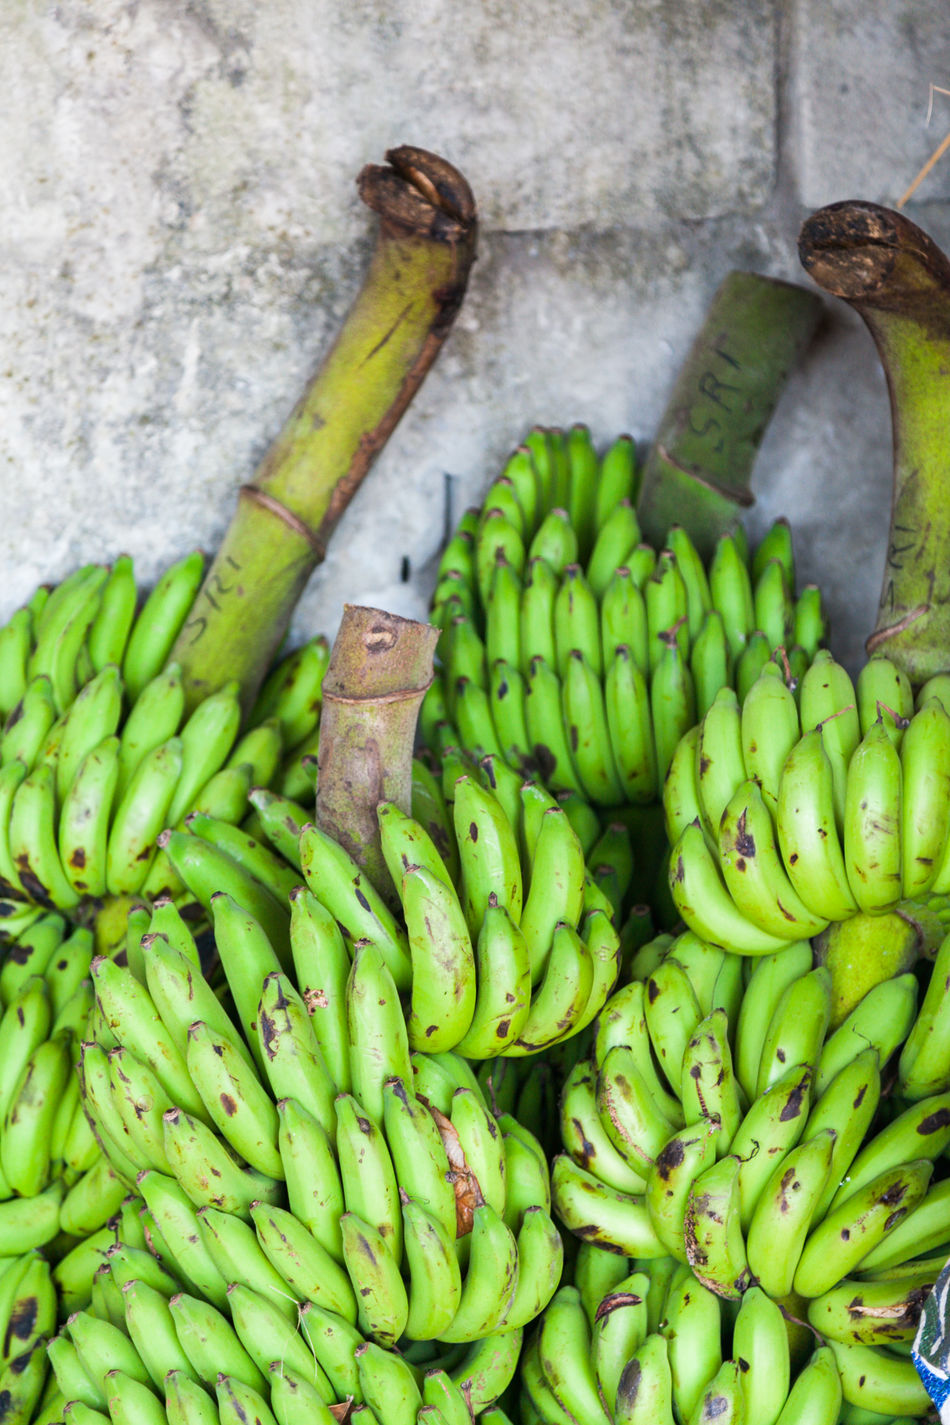 Banana Bunches Of Bananas Close-up Day Food Food And Drink Freshness Fruit Green Bananas Green Color Healthy Eating No People Outdoors